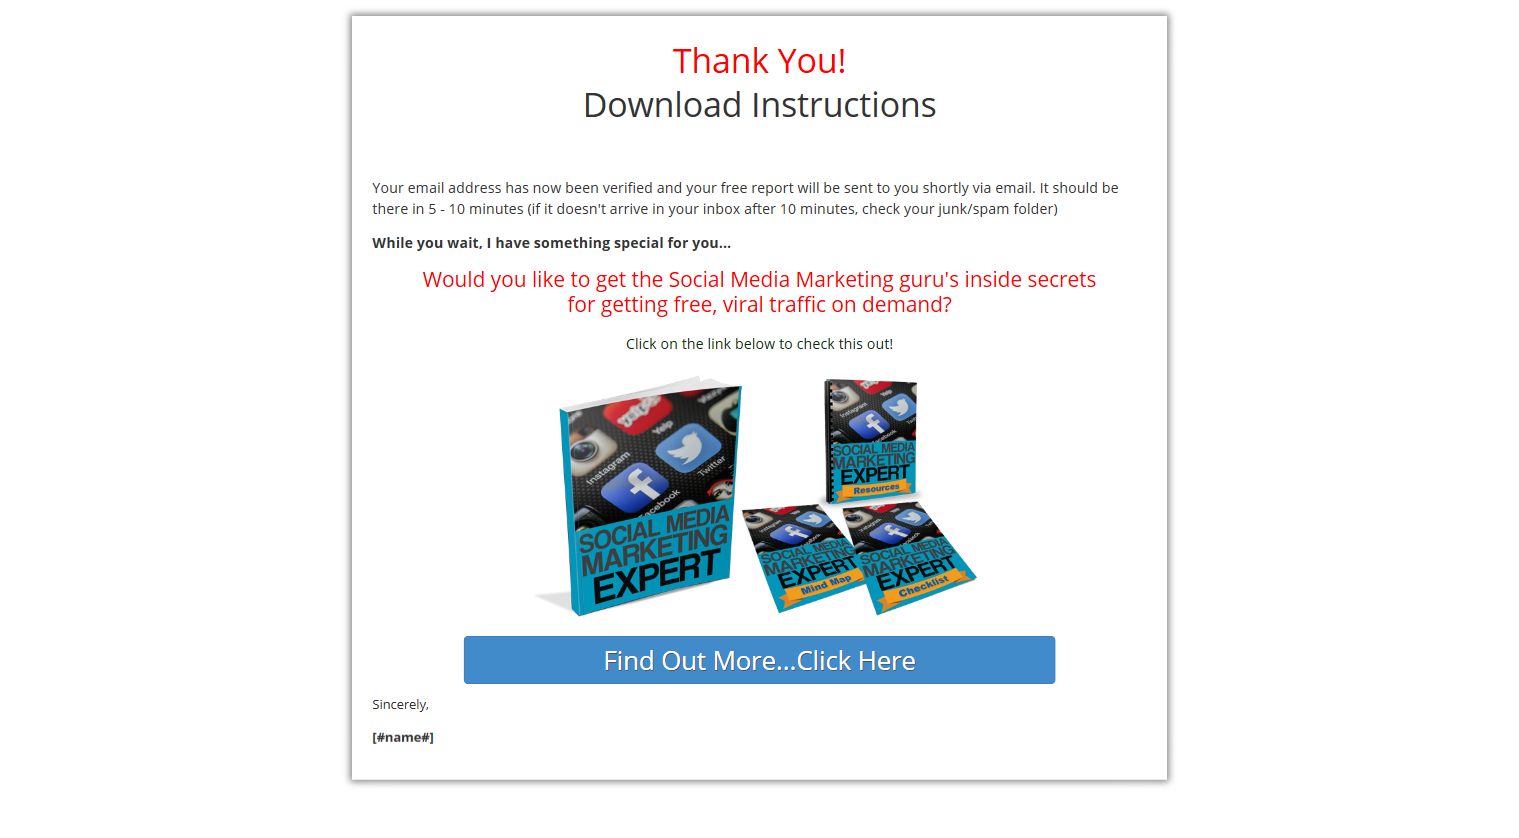 Done For You Social Media Funnel review – HOW DOES IT WORK? : The New Web-Based Software That Creates Your High Converting Listbuilding Mini-funnel With Just A Few Easy Clicks [Rebranded Report + Responsive Squeeze Page + Thank You Page + Monetized Download Page + Email Autoresponder Sequence - All Branded For You In Minutes]